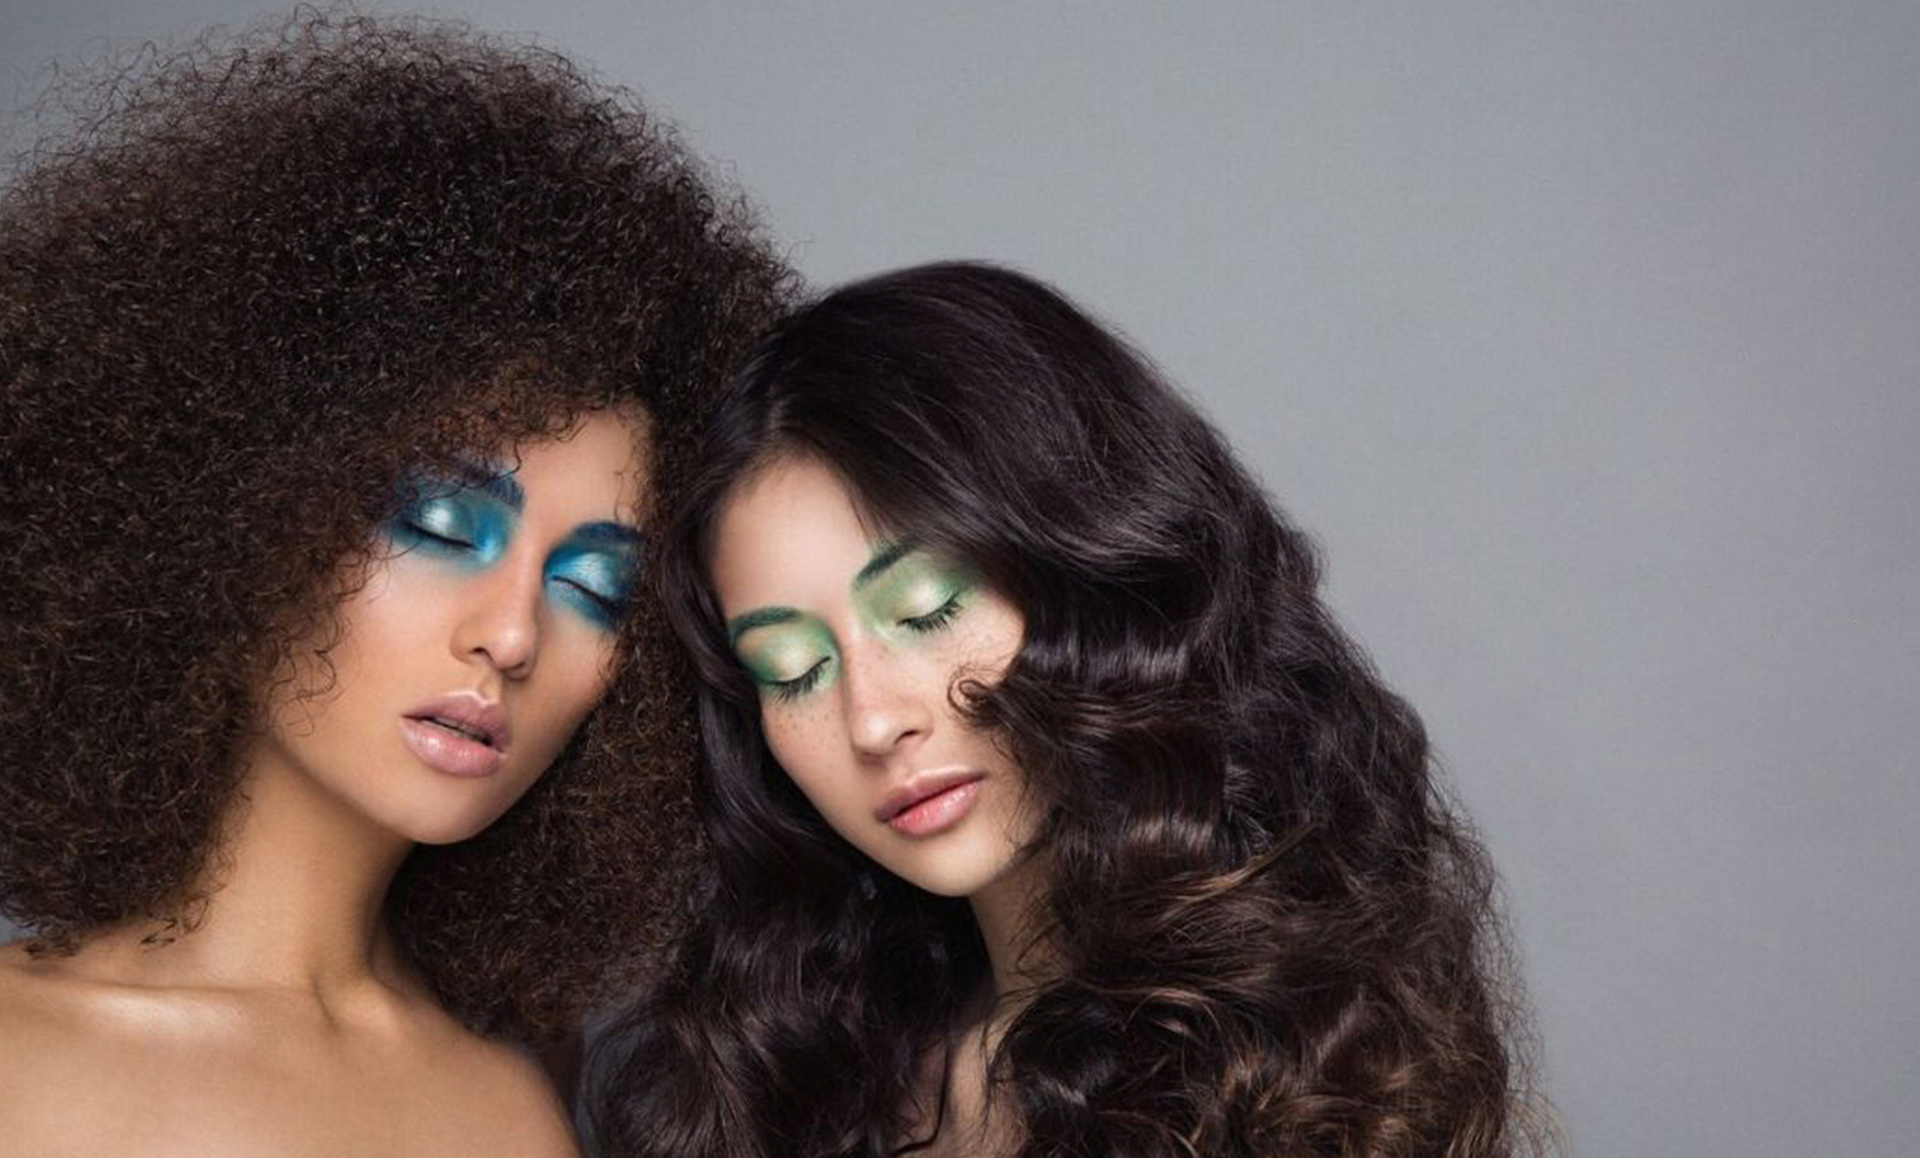 retail and ecommerce marketing organic makeup on models